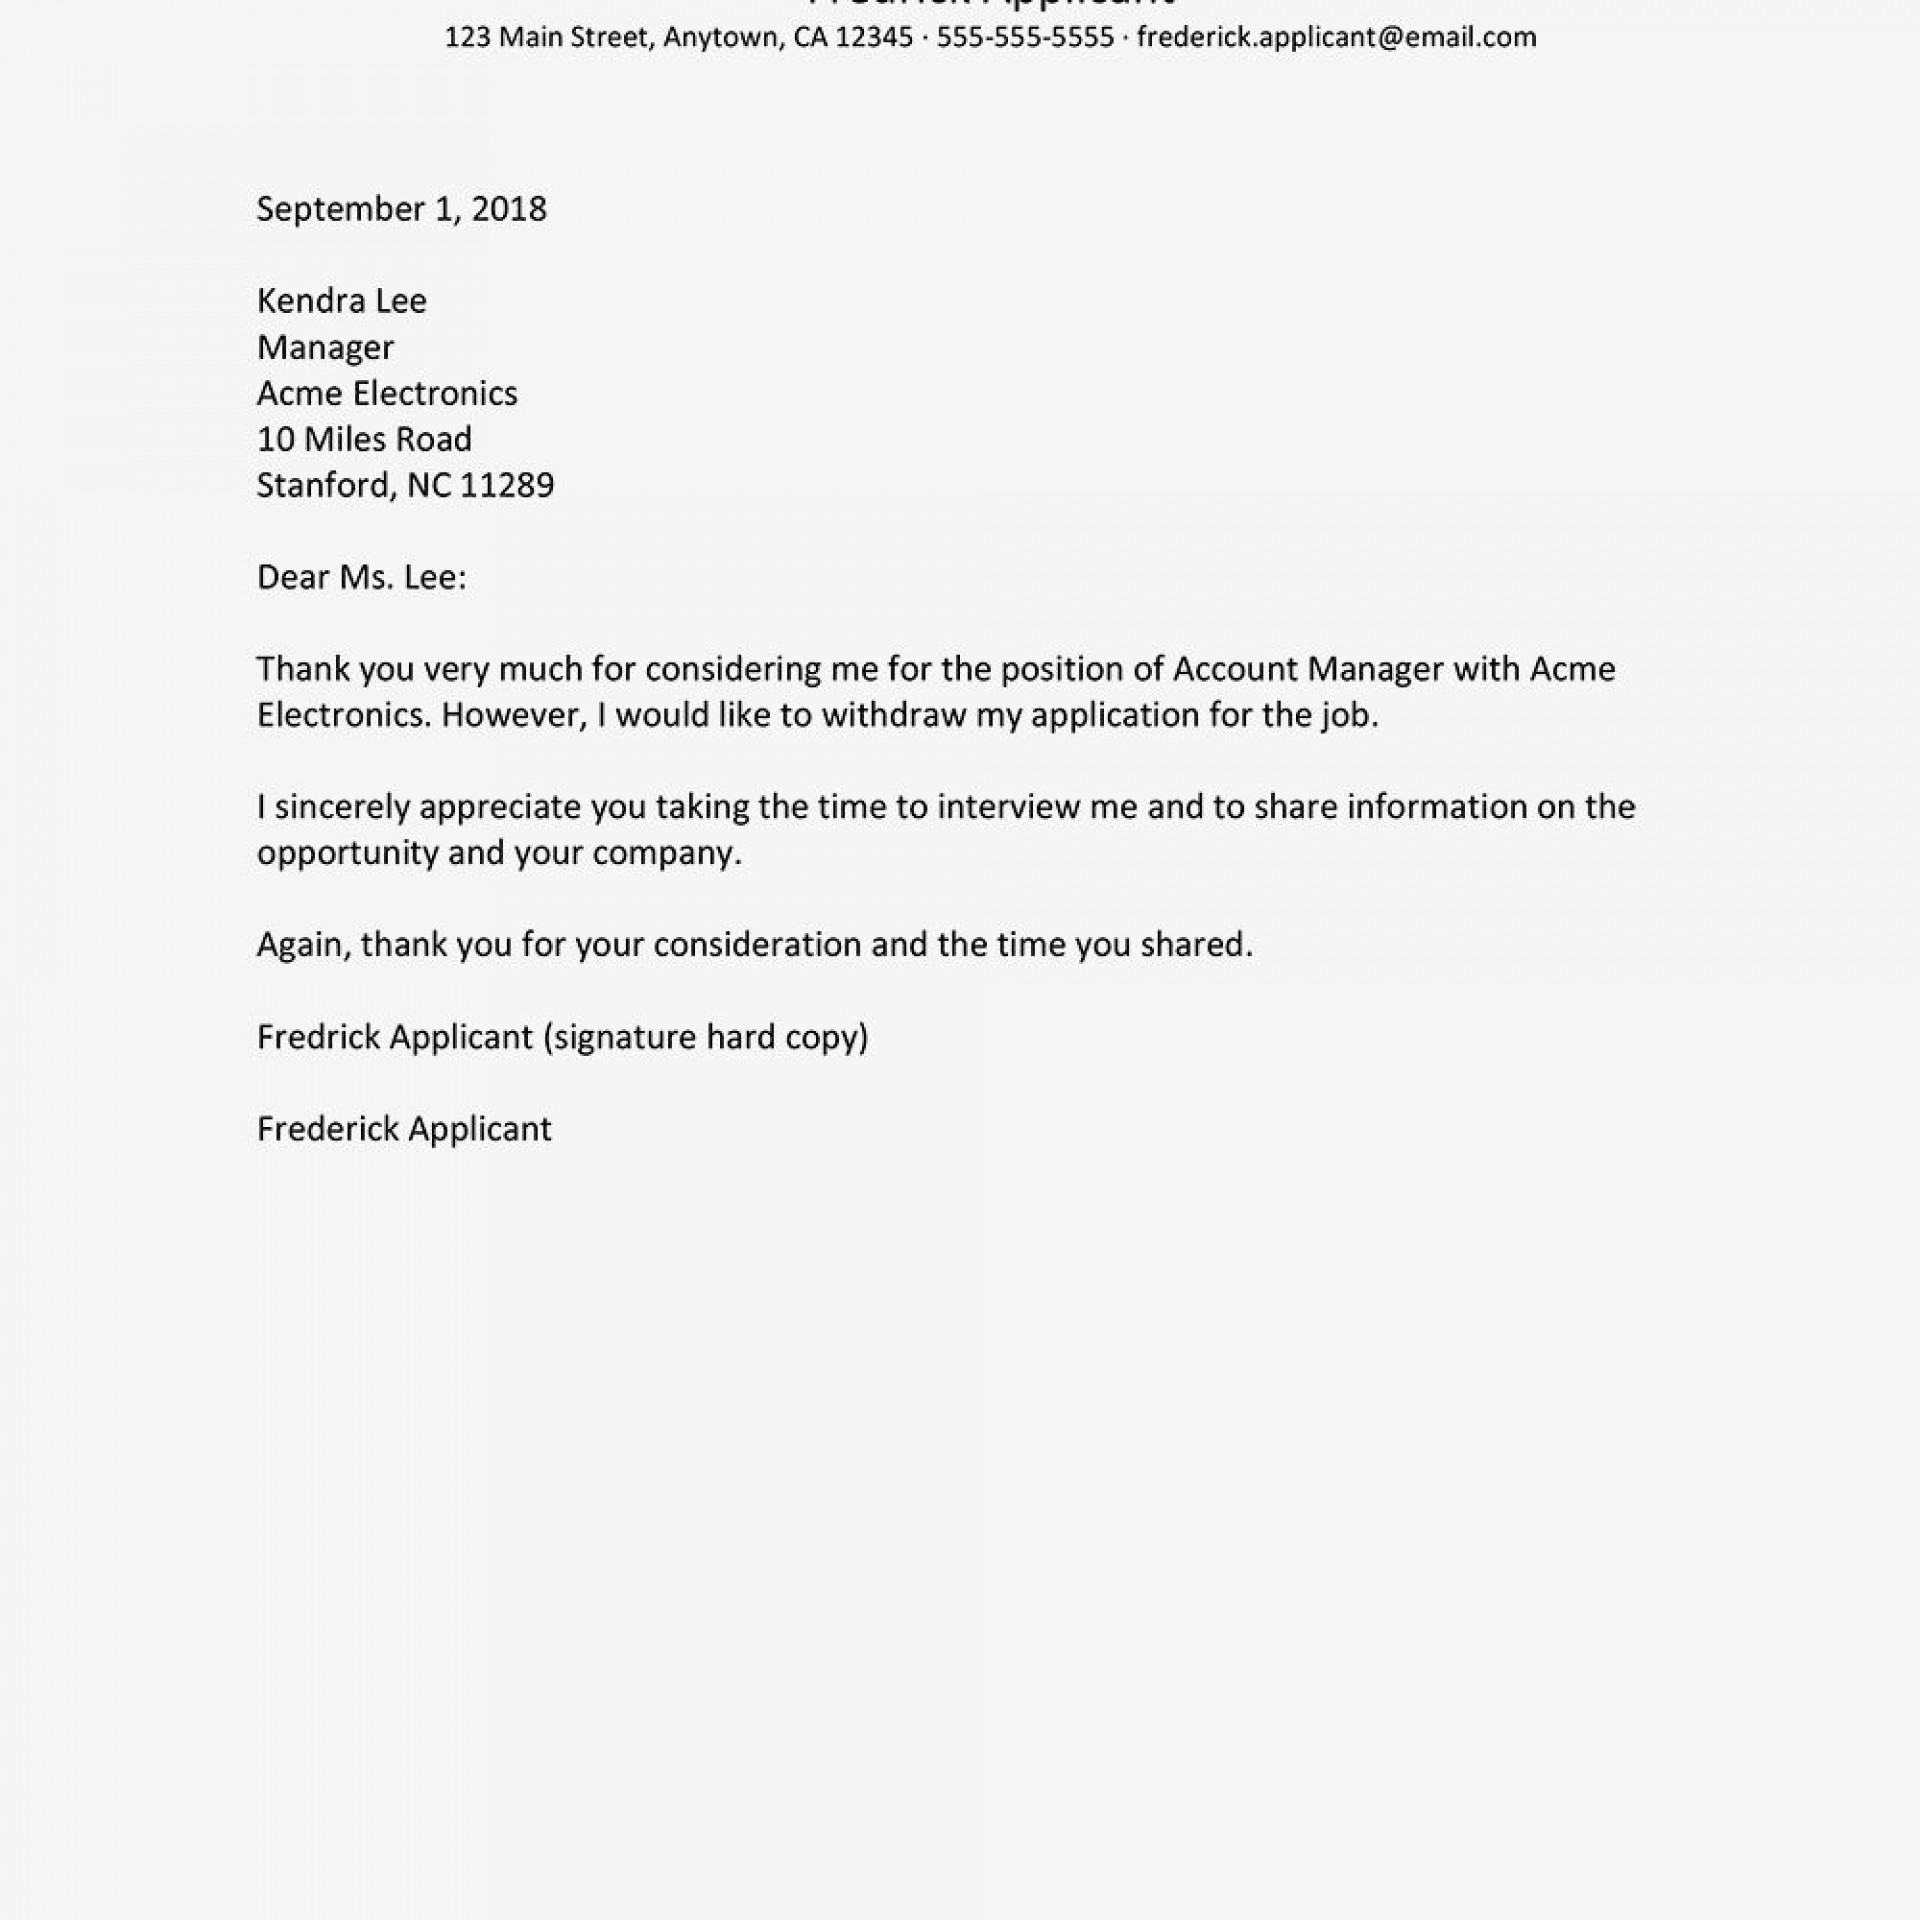 005 Unusual Job Application Email Template Photo  Formal For Example Opportunitie Subject1920